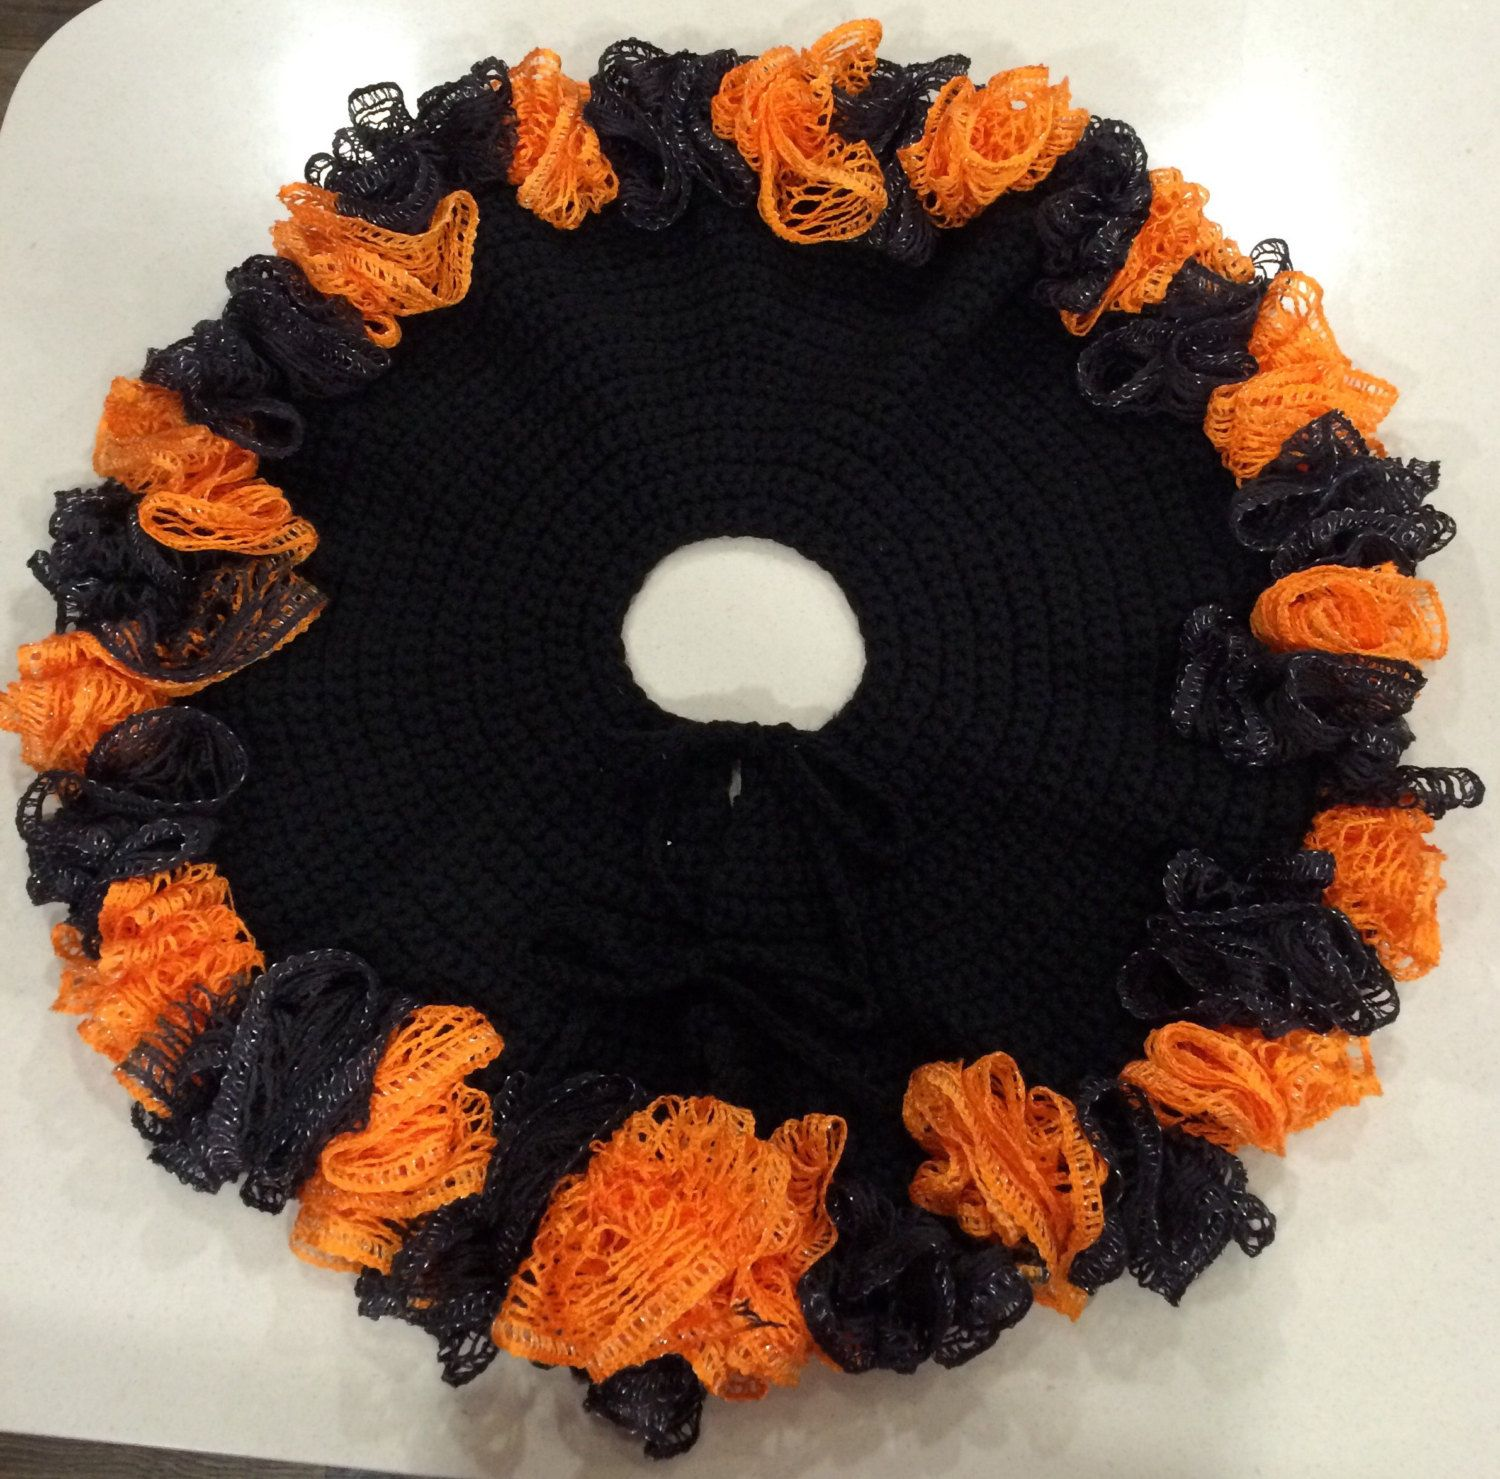 Orange and Black Halloween Tree Skirt by KingCrochetCrafts